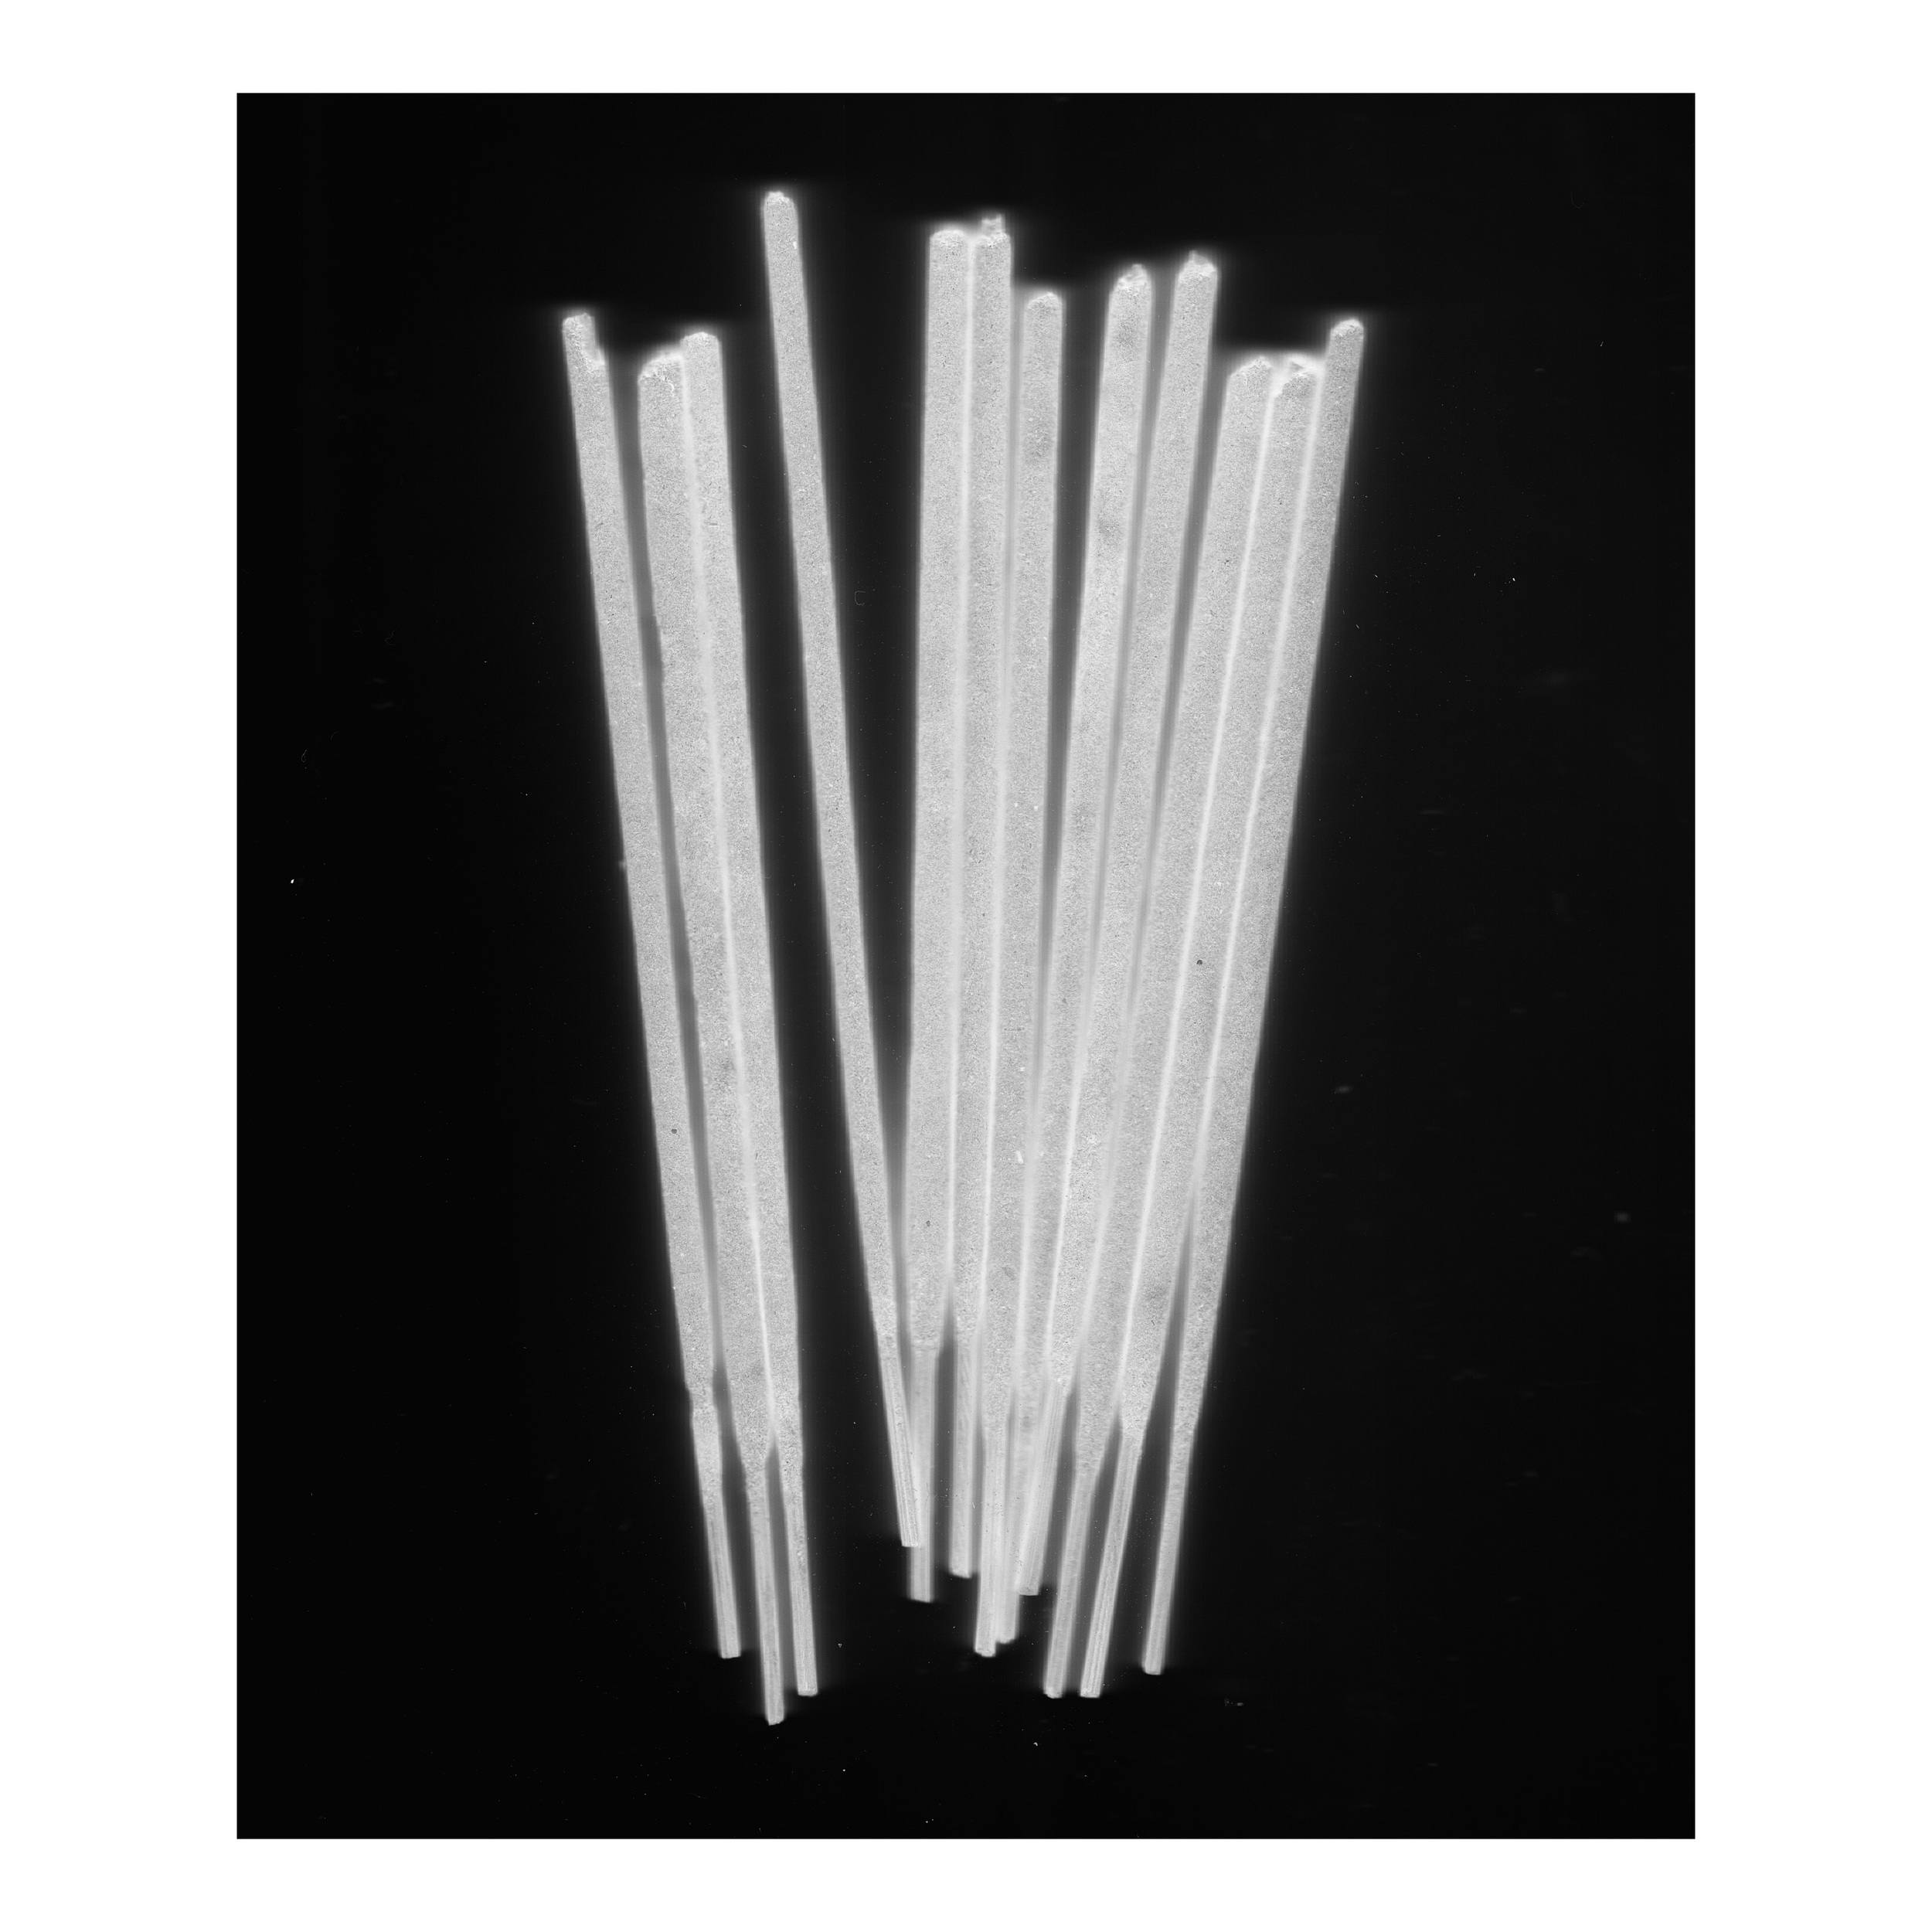 Fikuru 2.0 Incense sticks scanned with a digital flatbed scanner (2014)